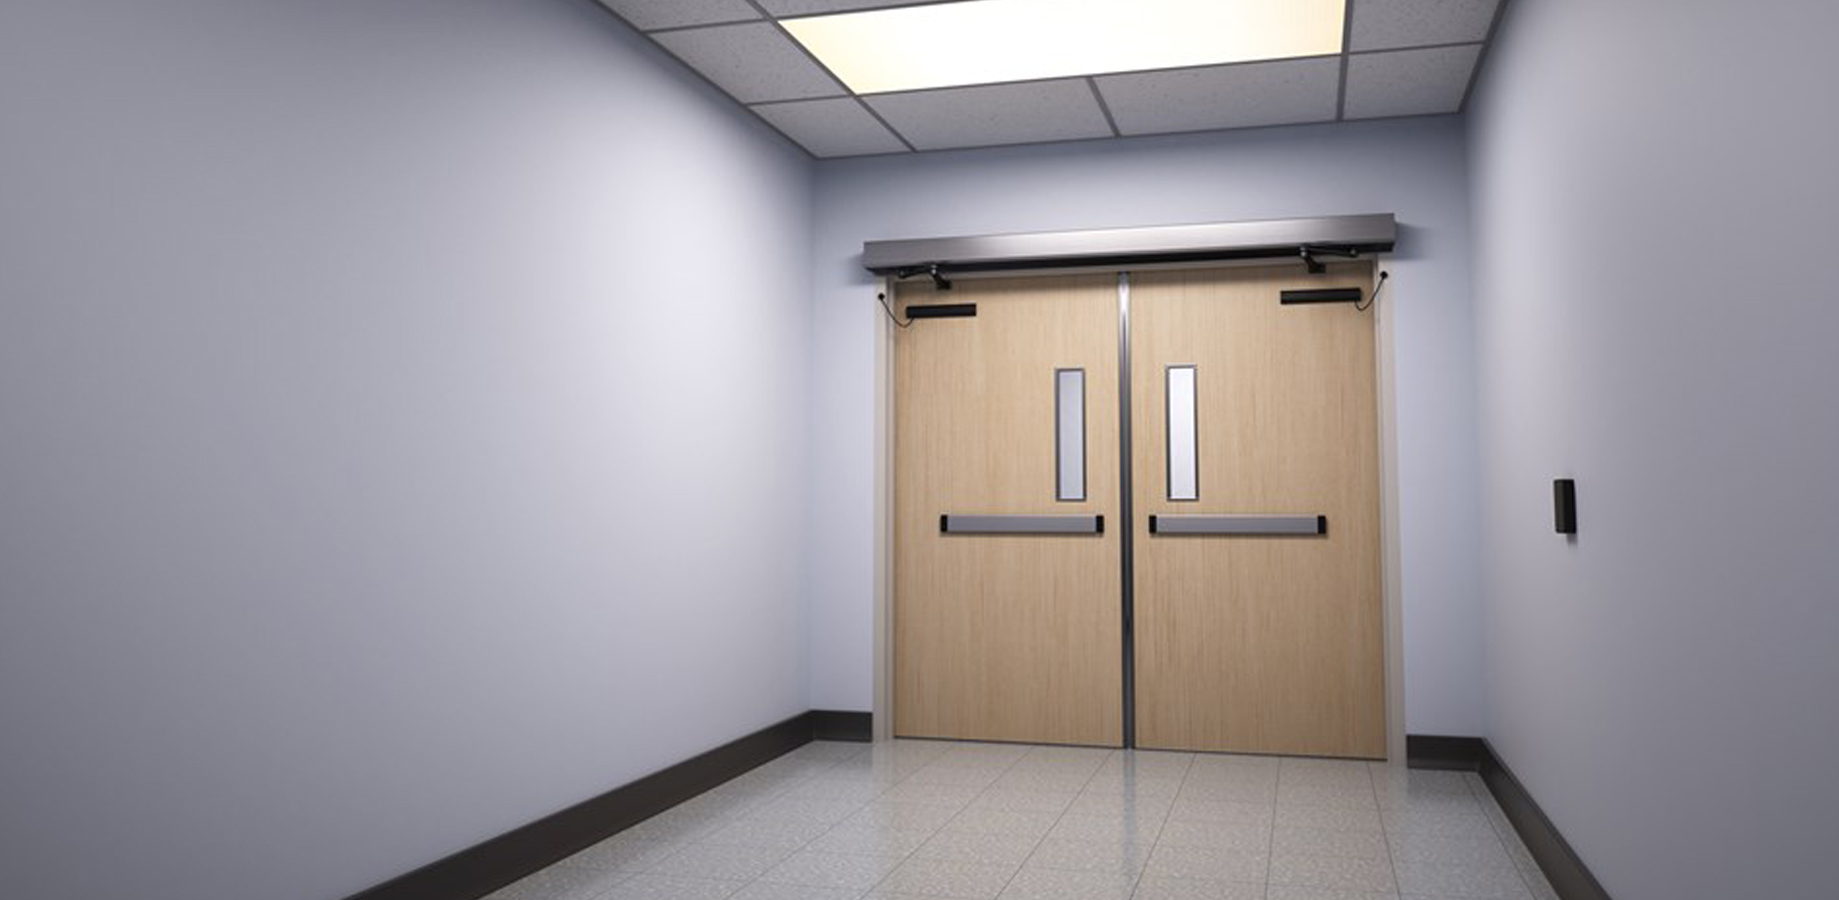 traditional our from doors metal unlike solutions hollow paired access swing abuses of withstand durable to industrial the built product environments feature ps door is